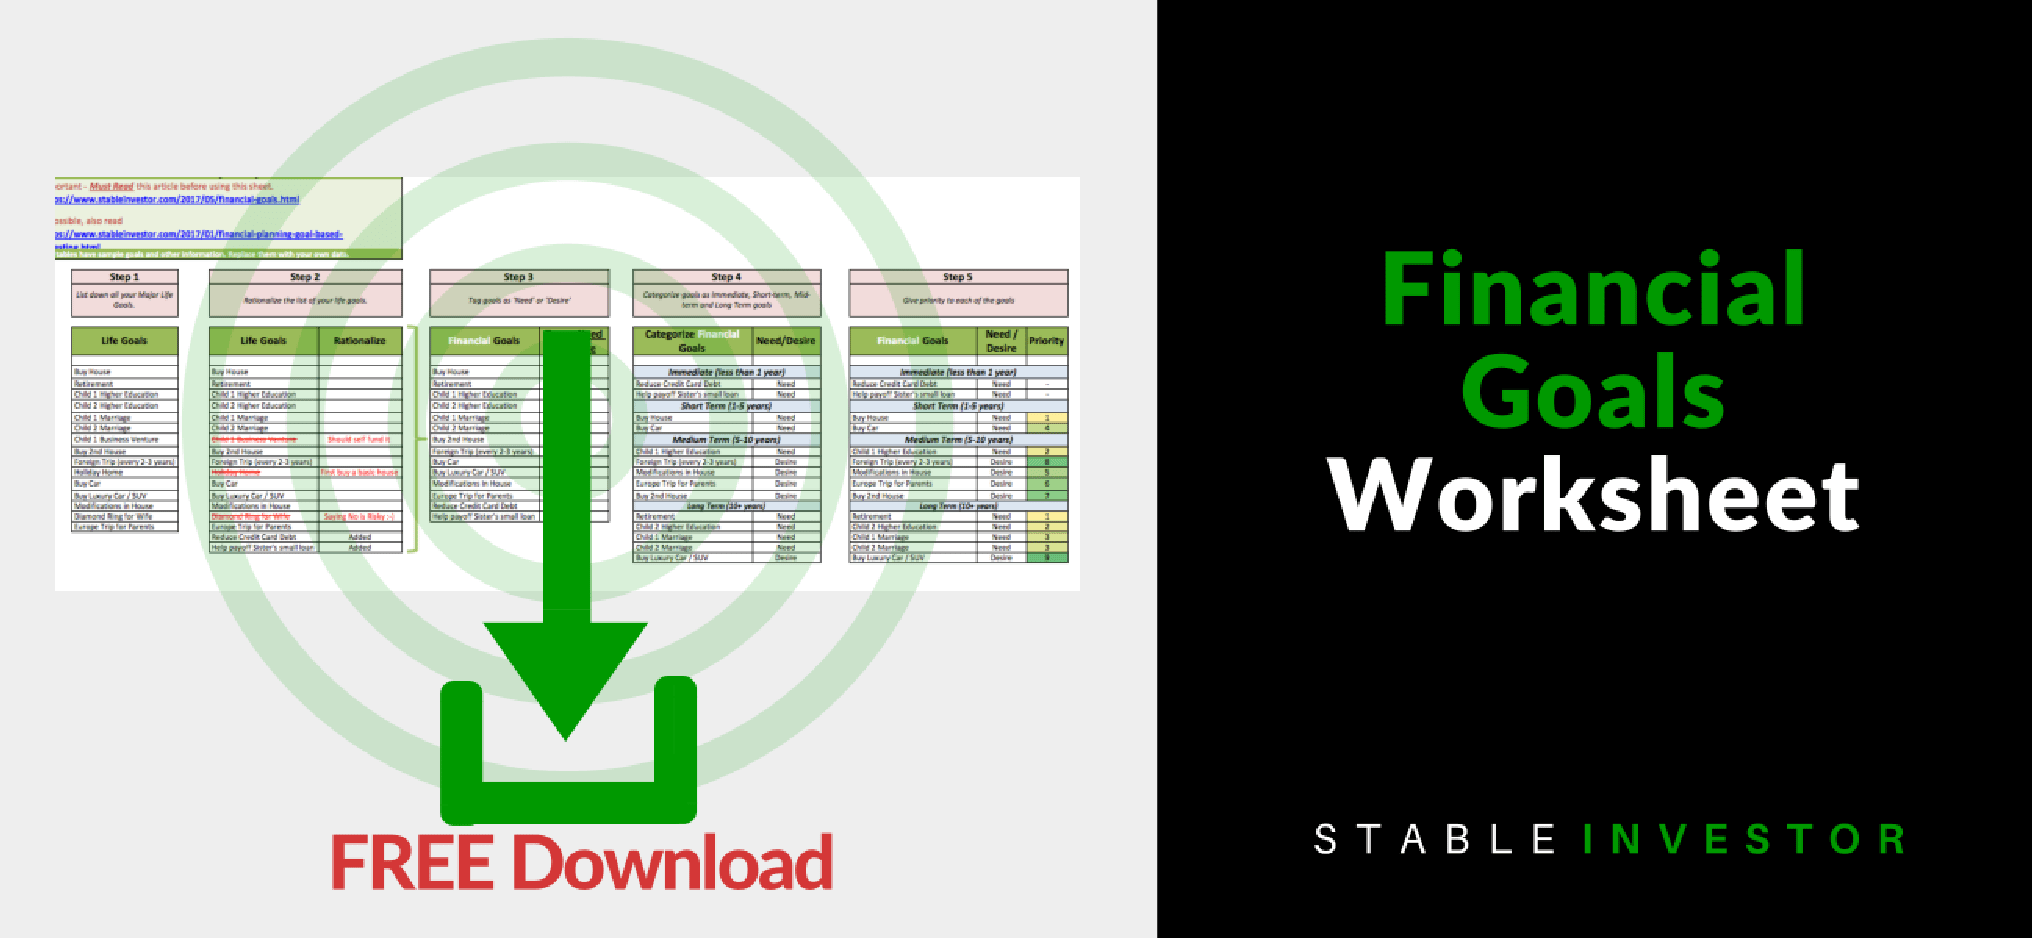 Financial Goals Worksheet Download Stable Investor